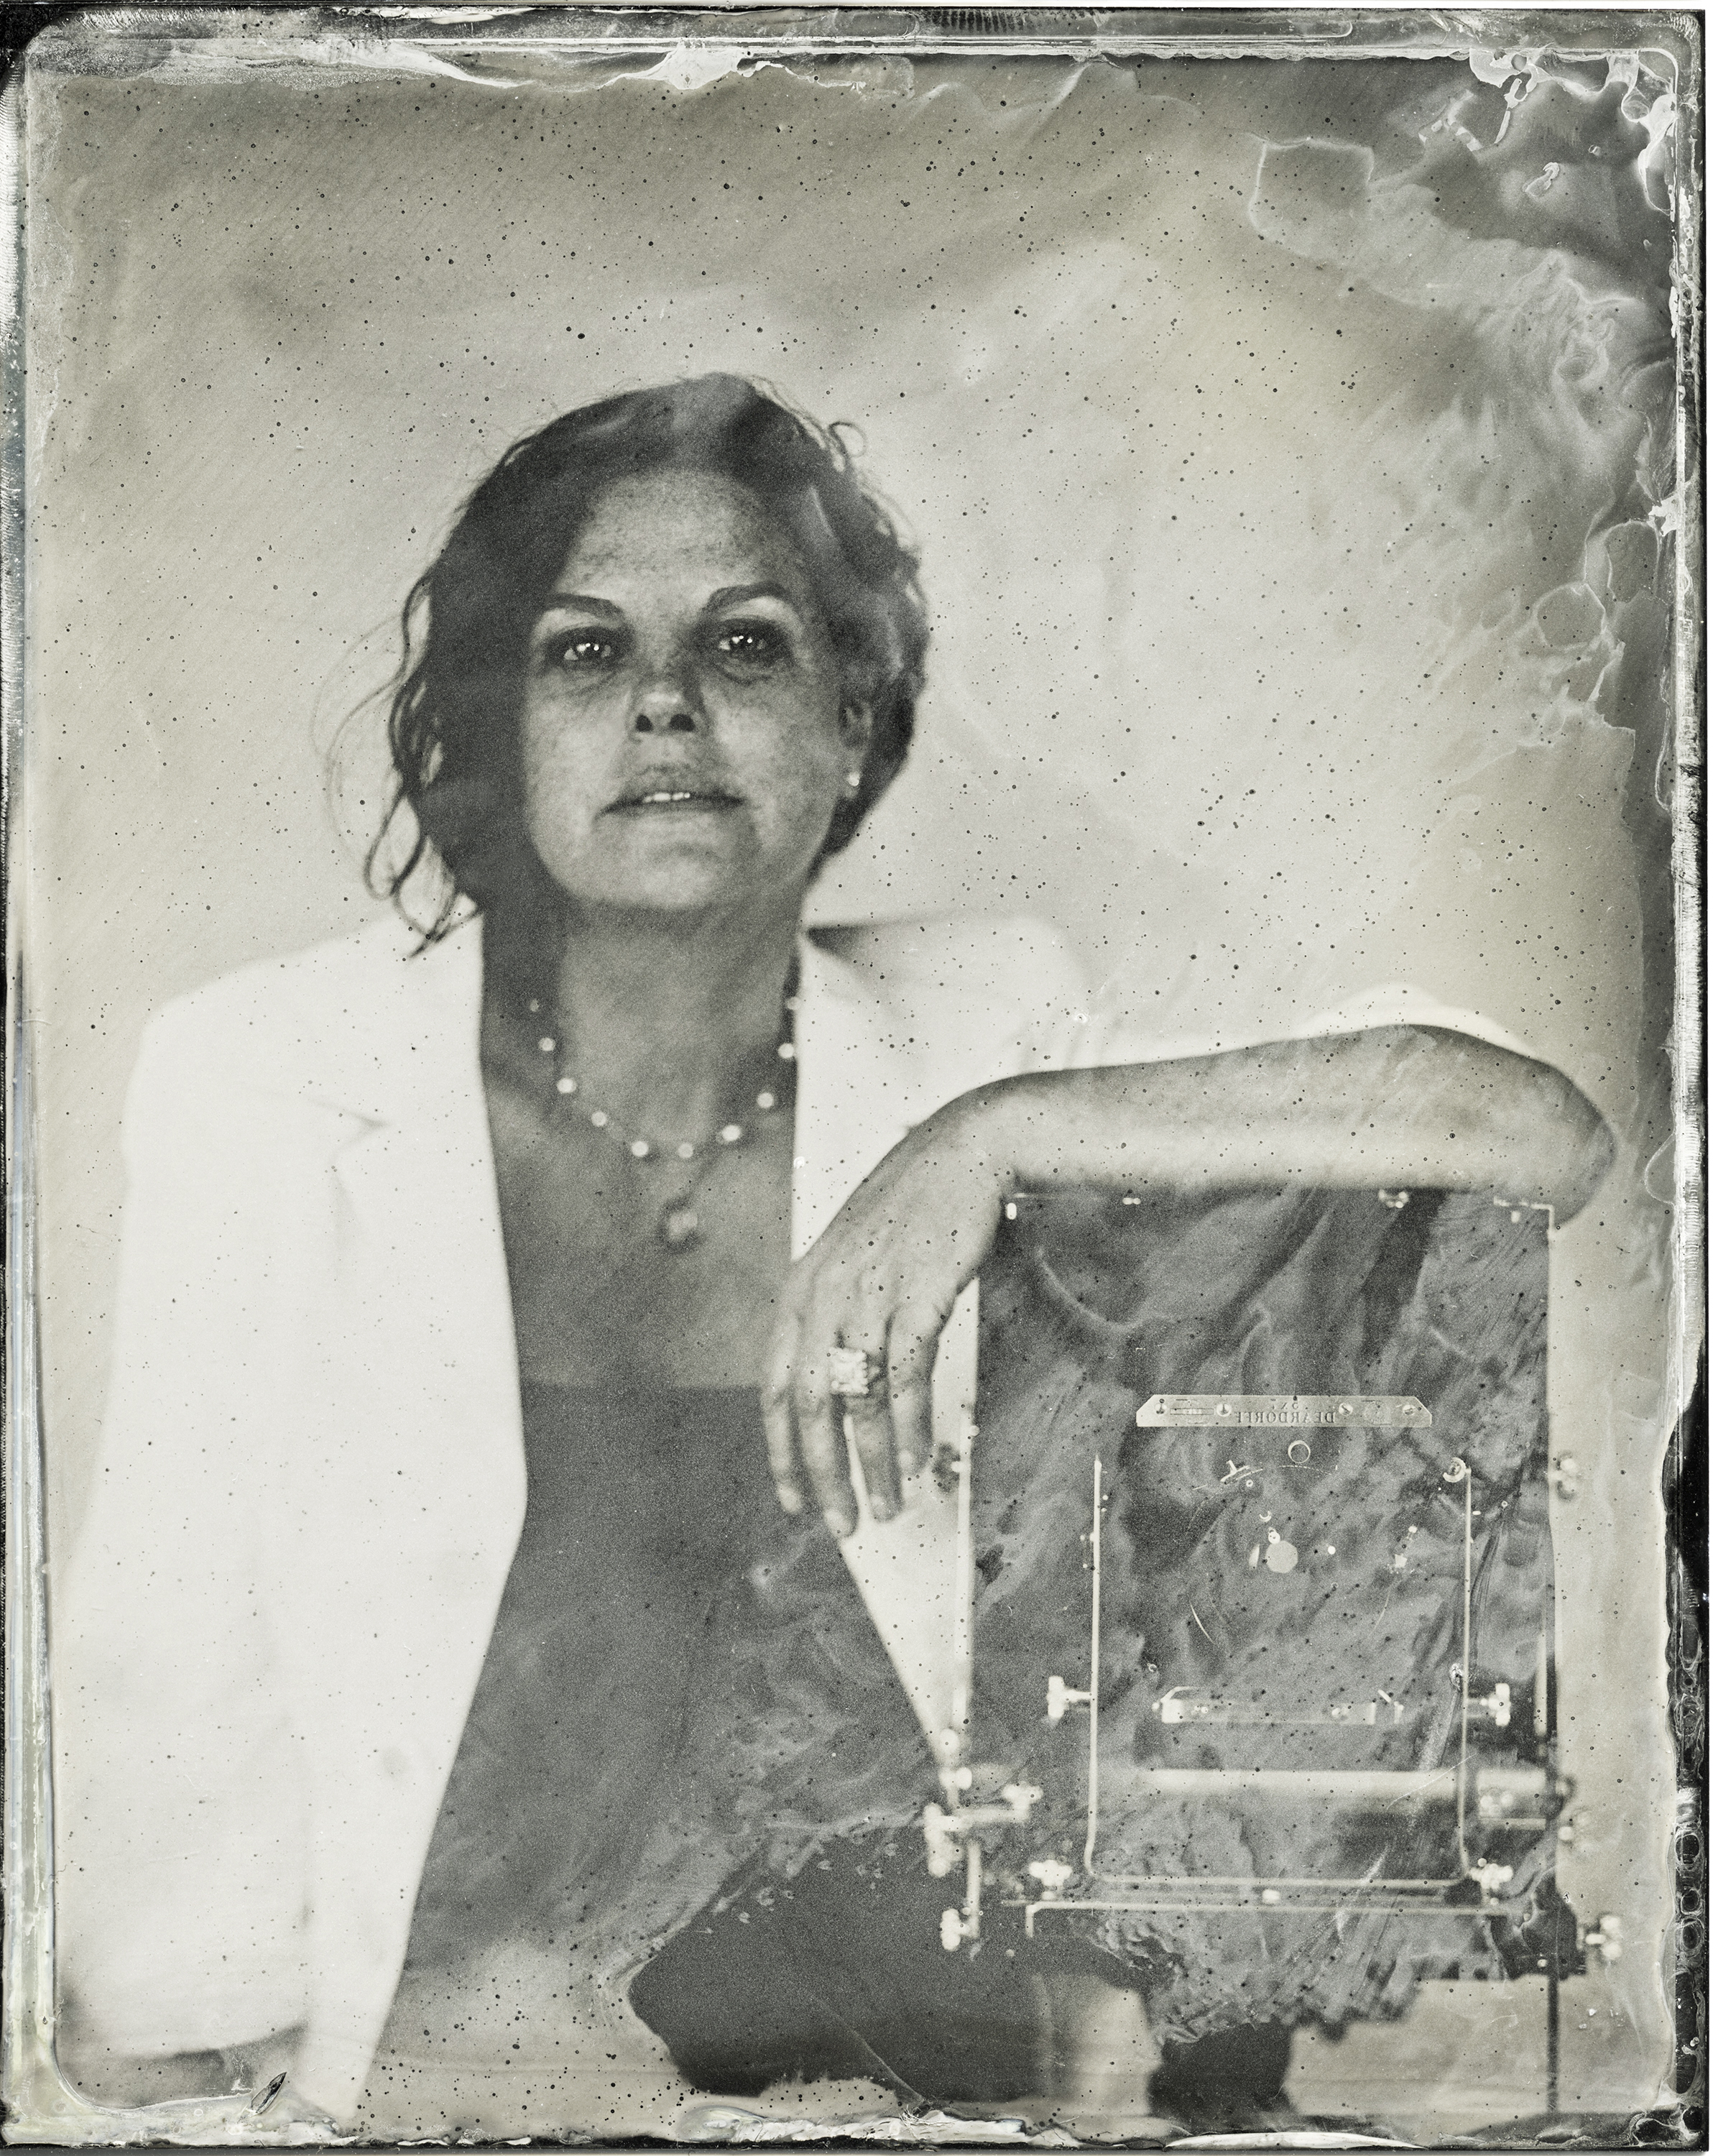 Tintype Portrait by Asa Gilmore, 2016